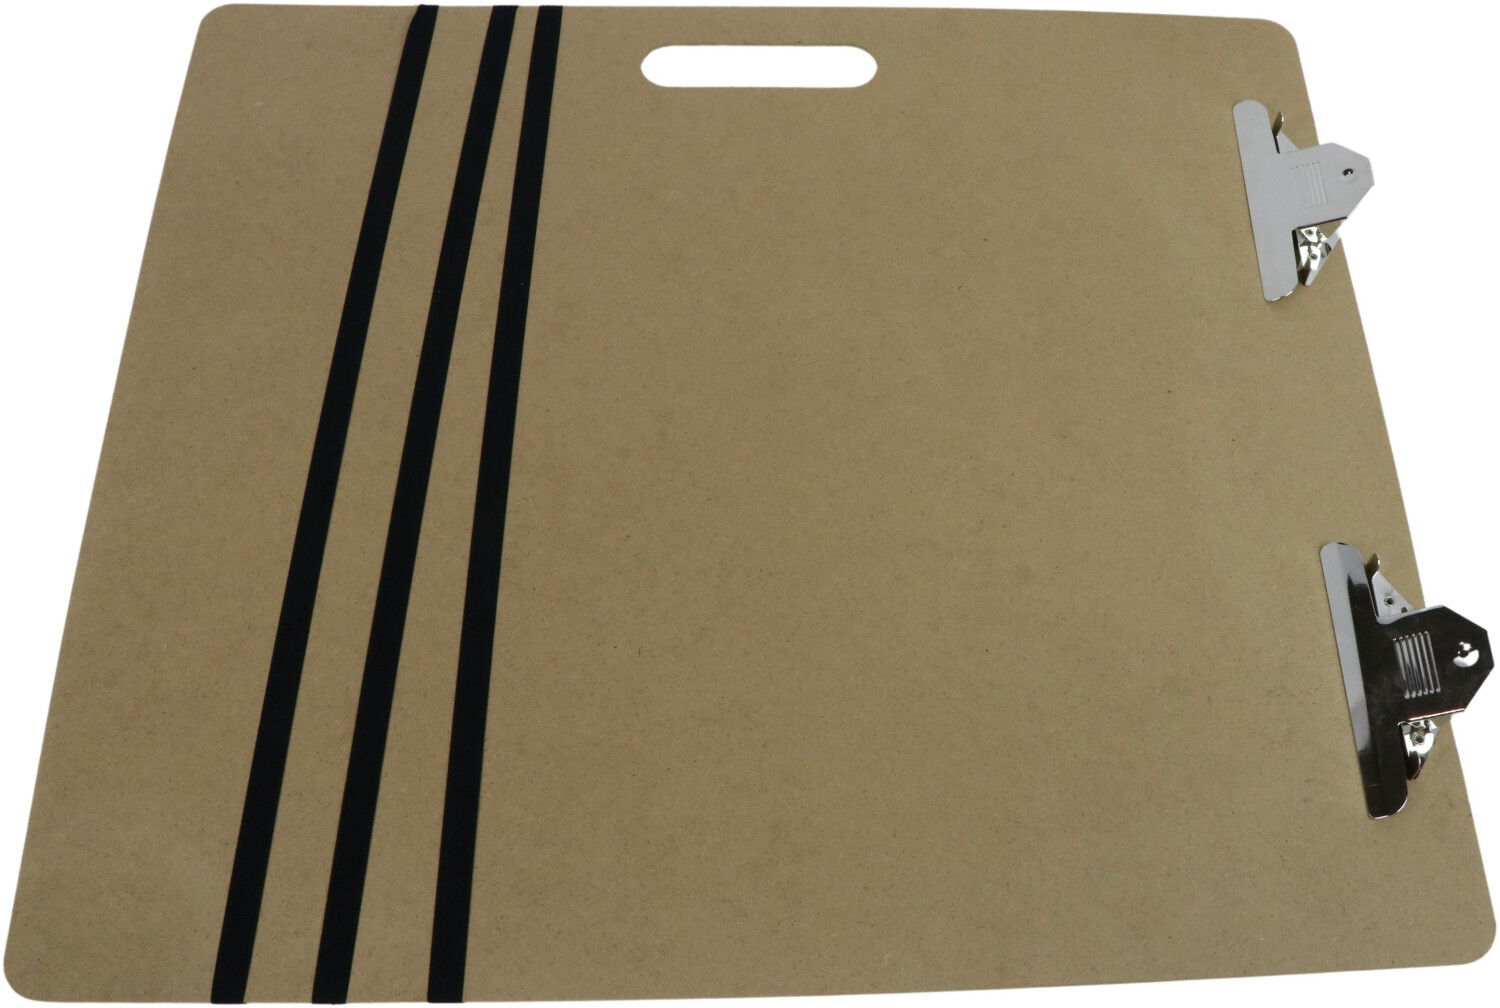 Juvale Store Hardboard Clipboard With Handle SP031319-01